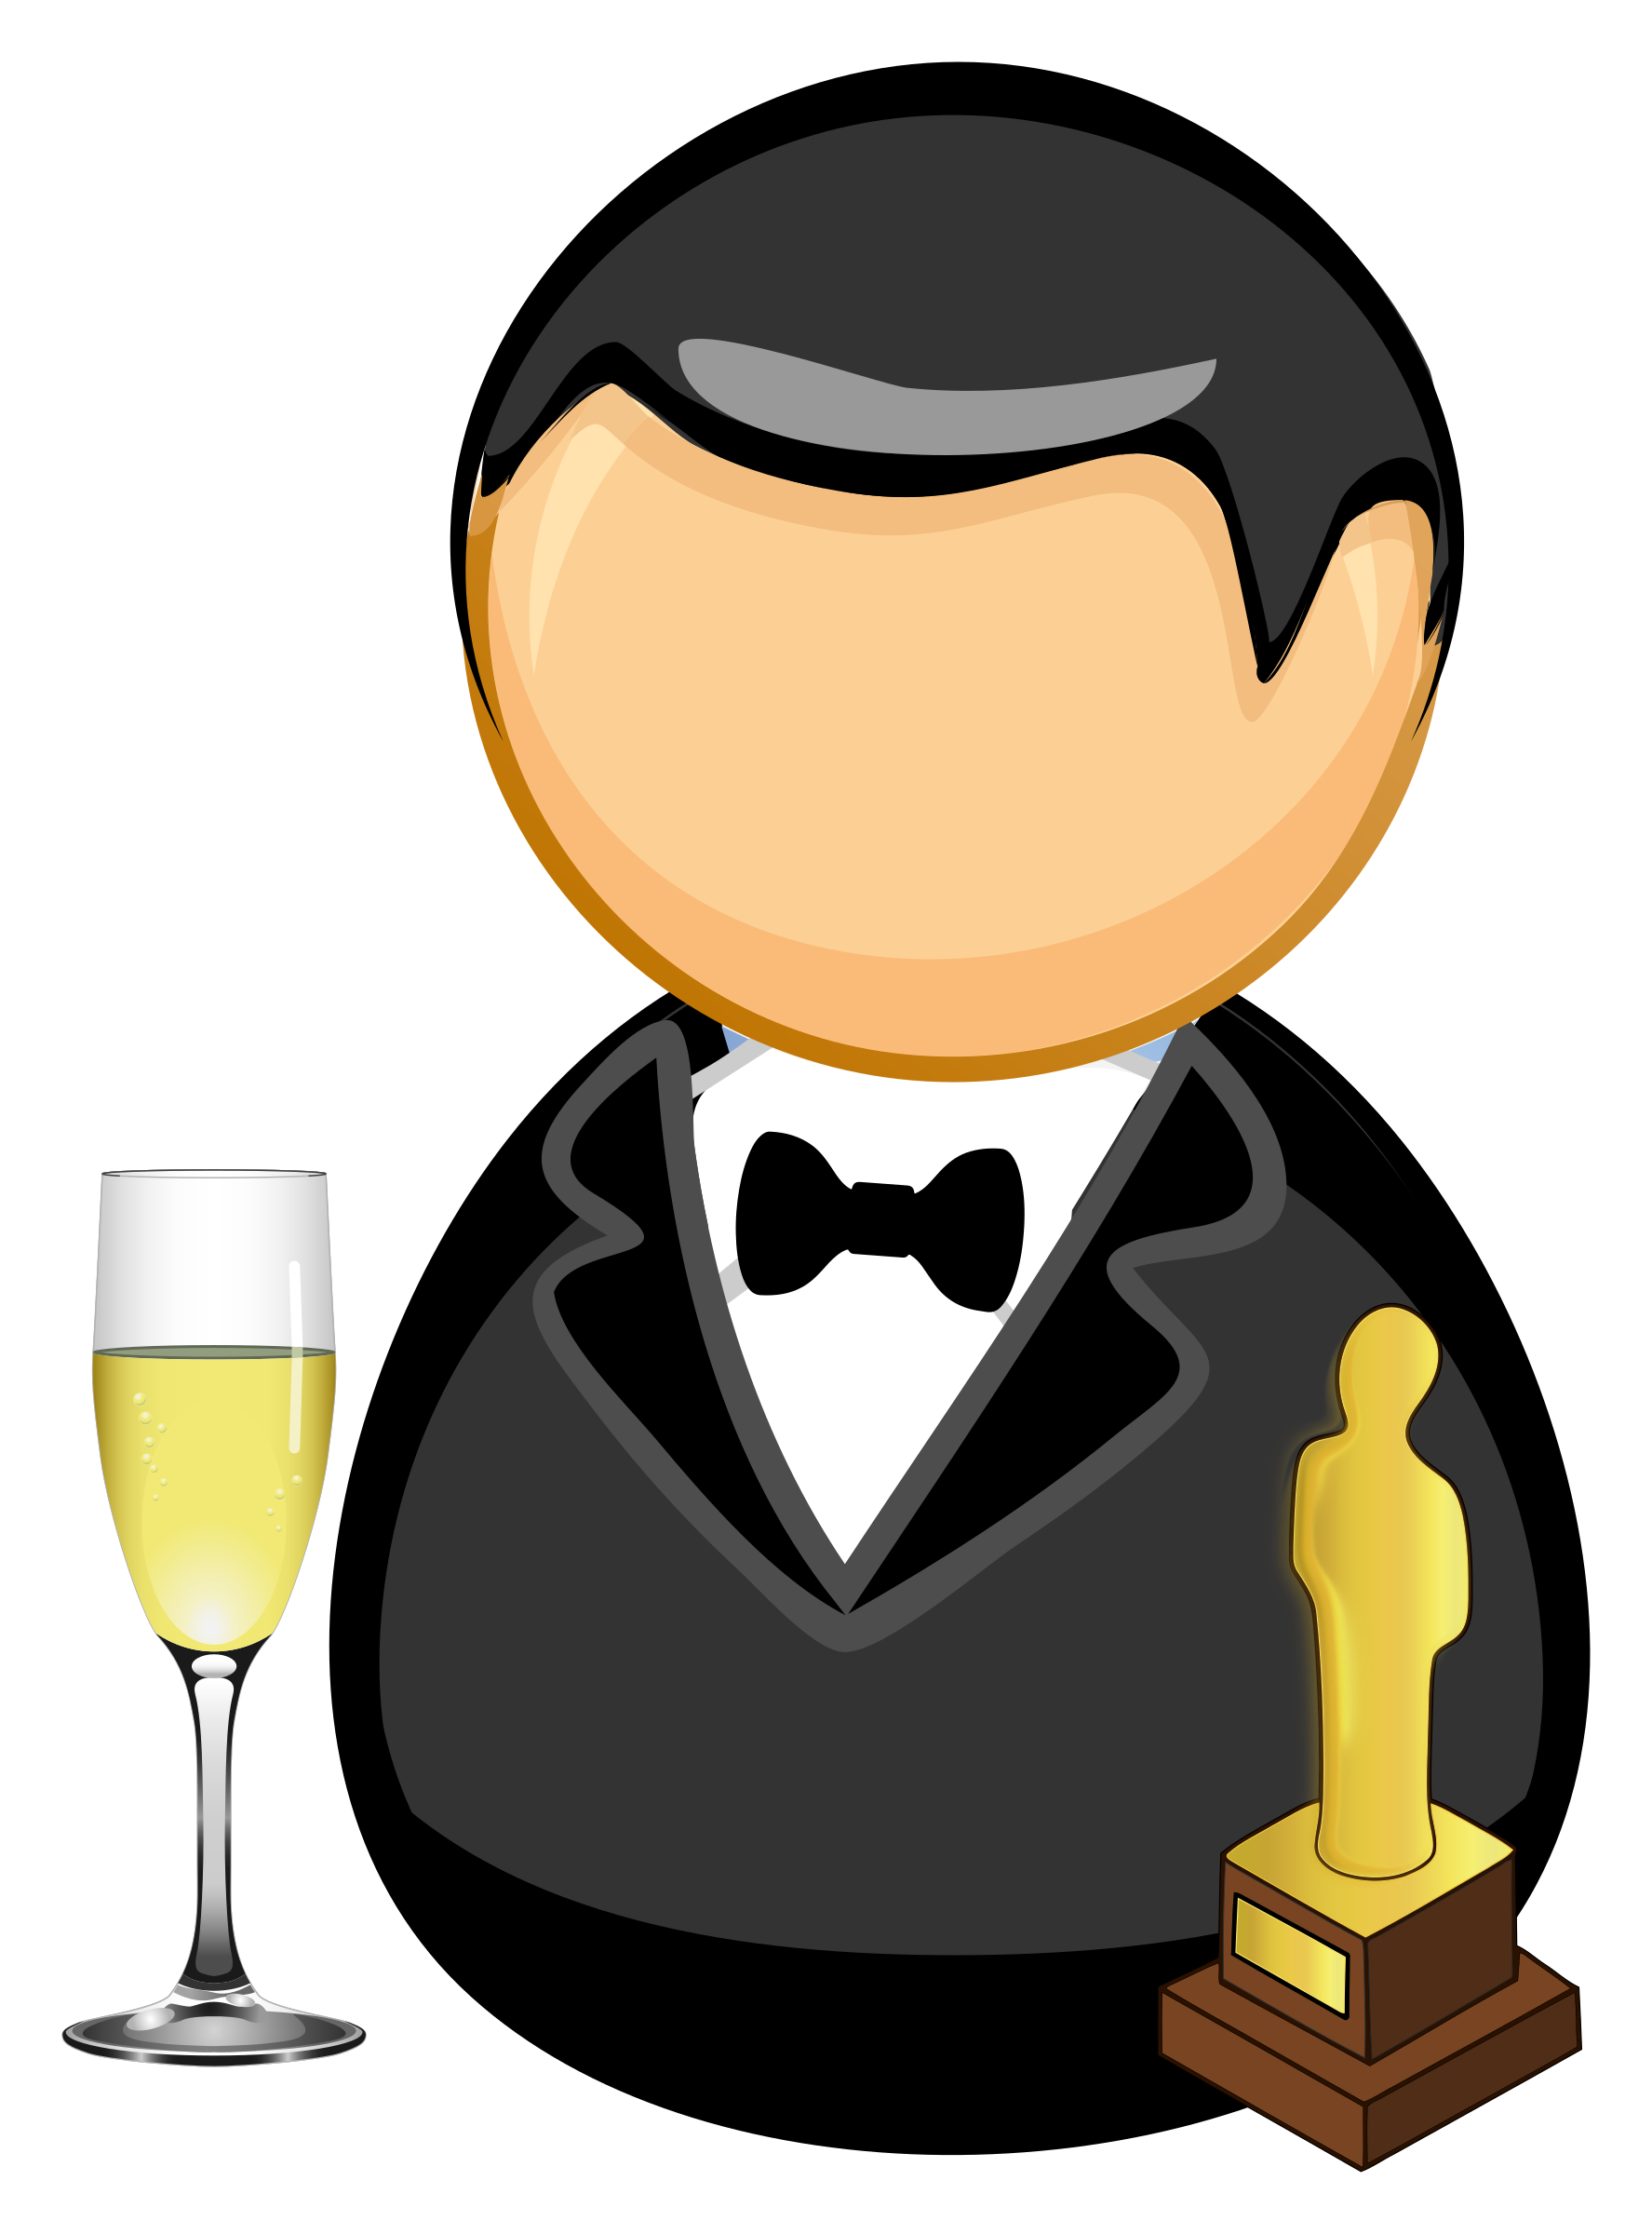 Movie star png. Actor icons free and